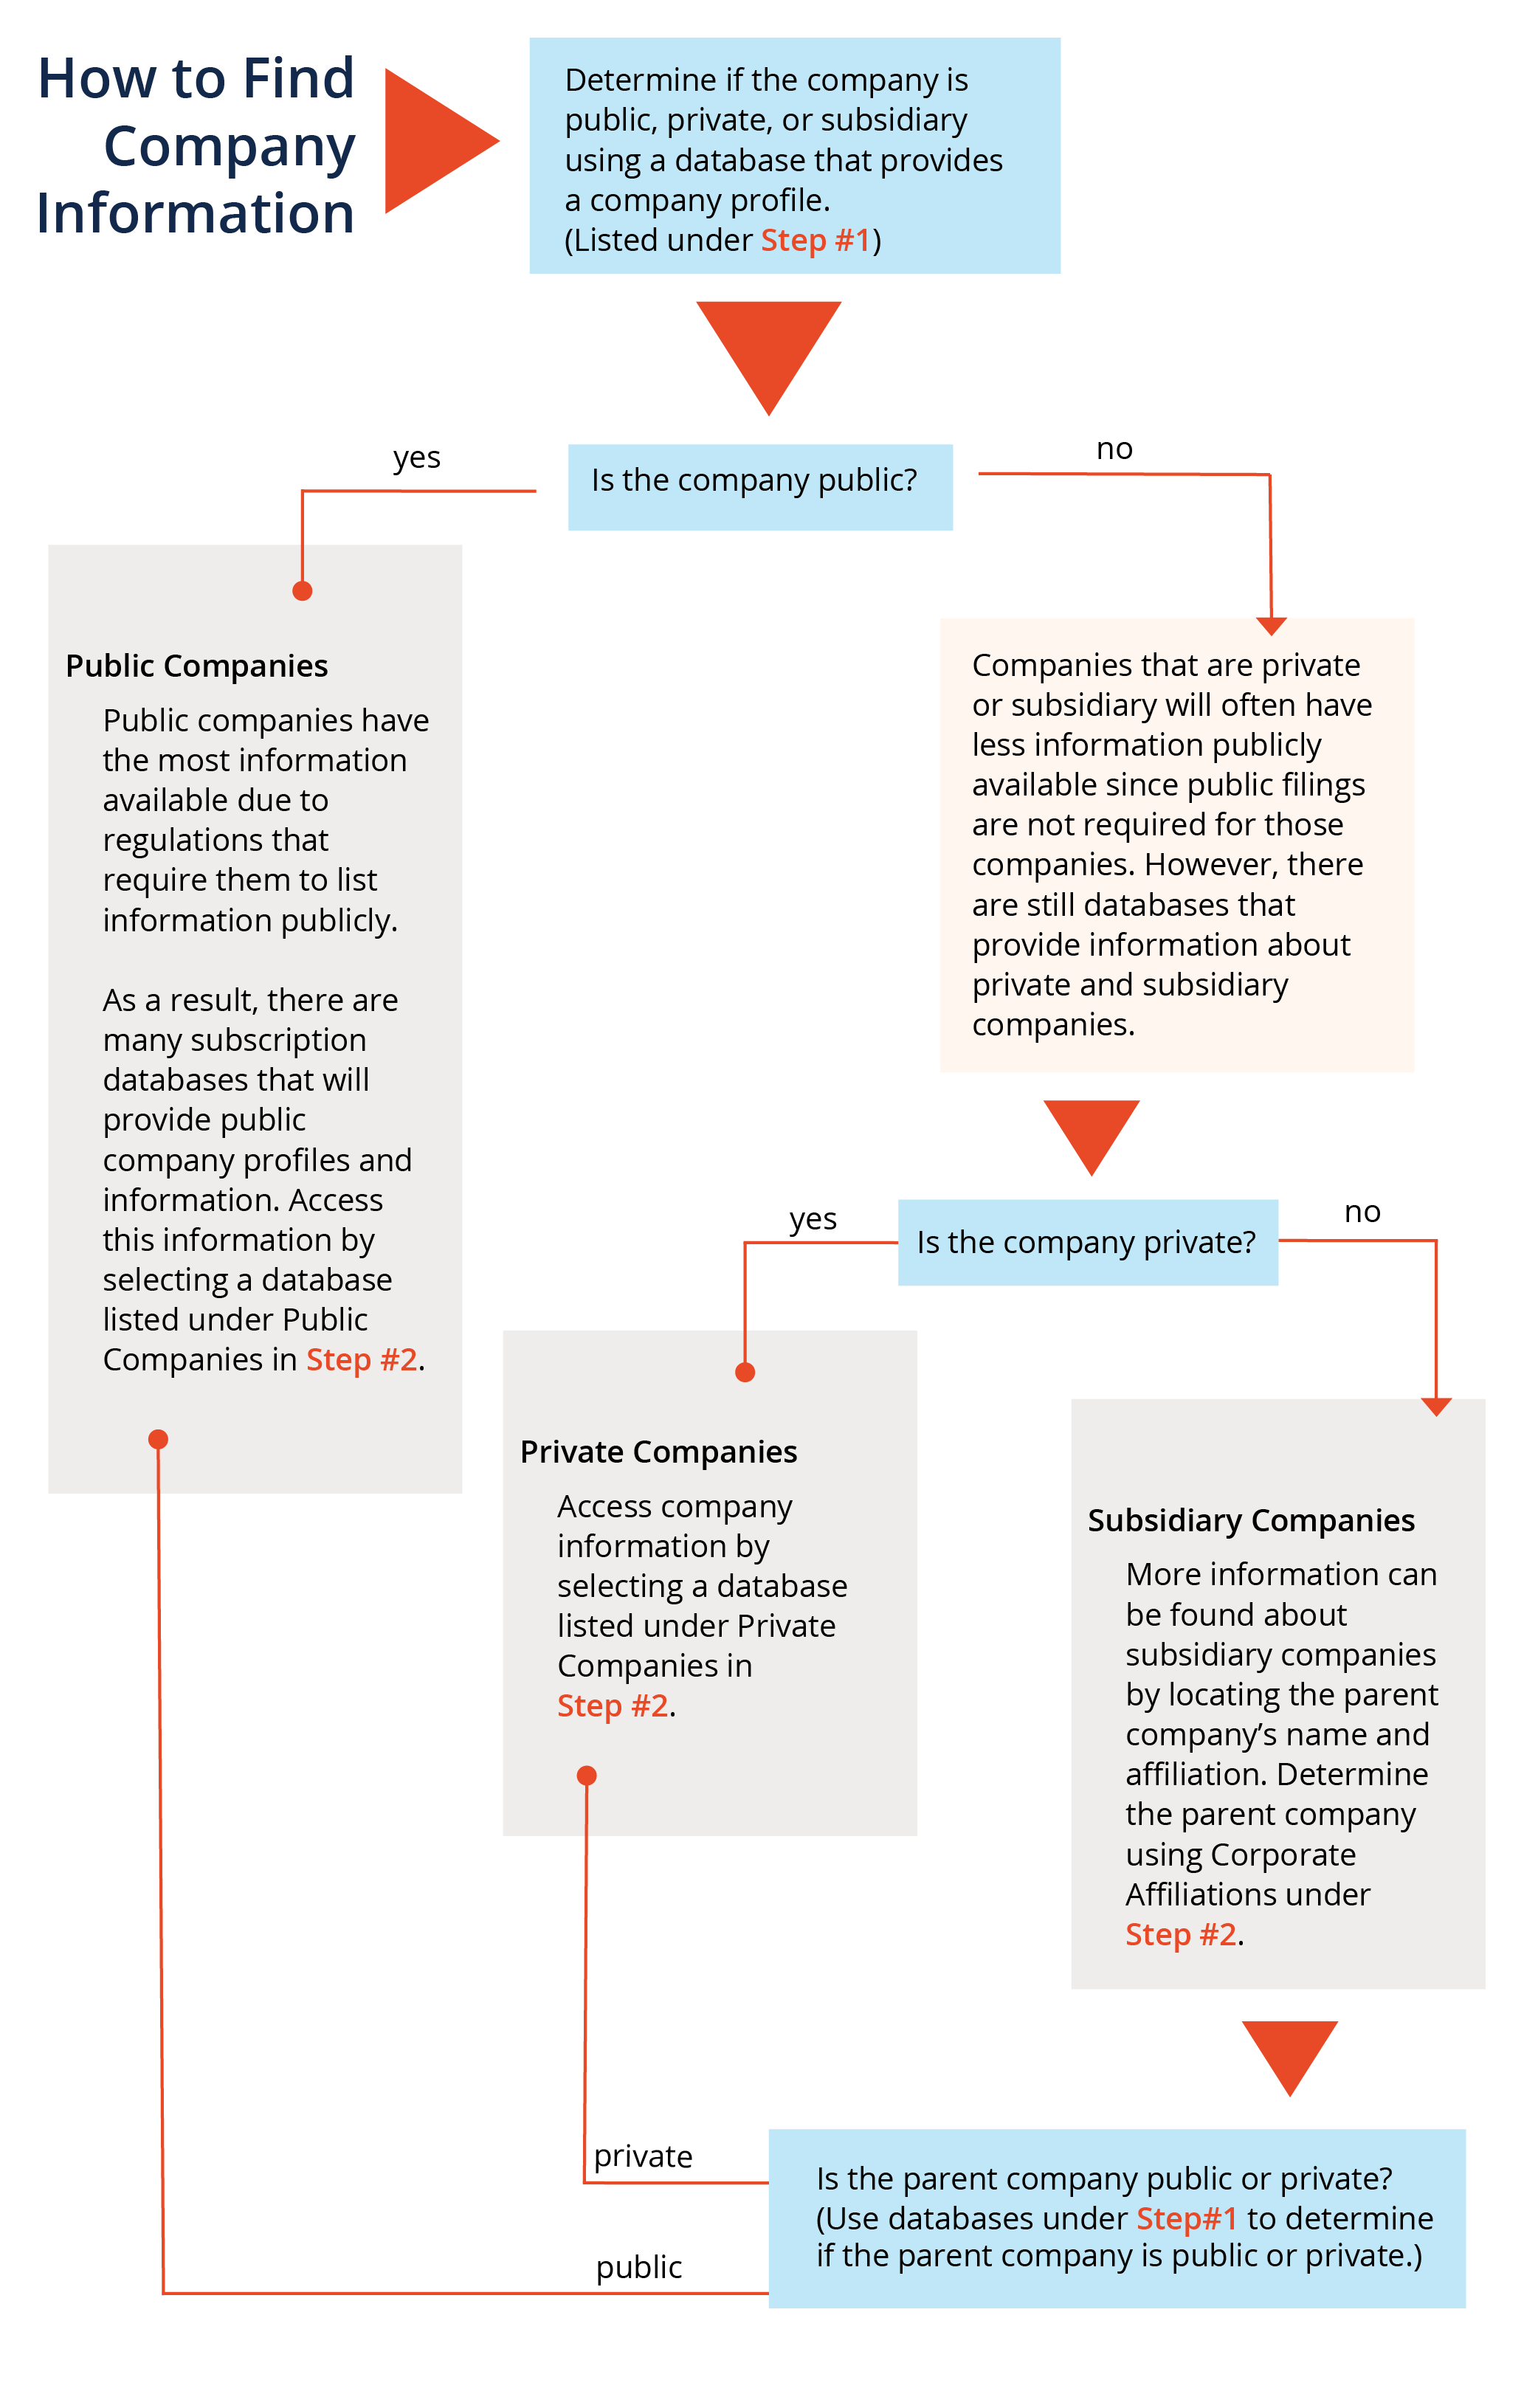 company information flowchart, visit pdf link to for accessible text